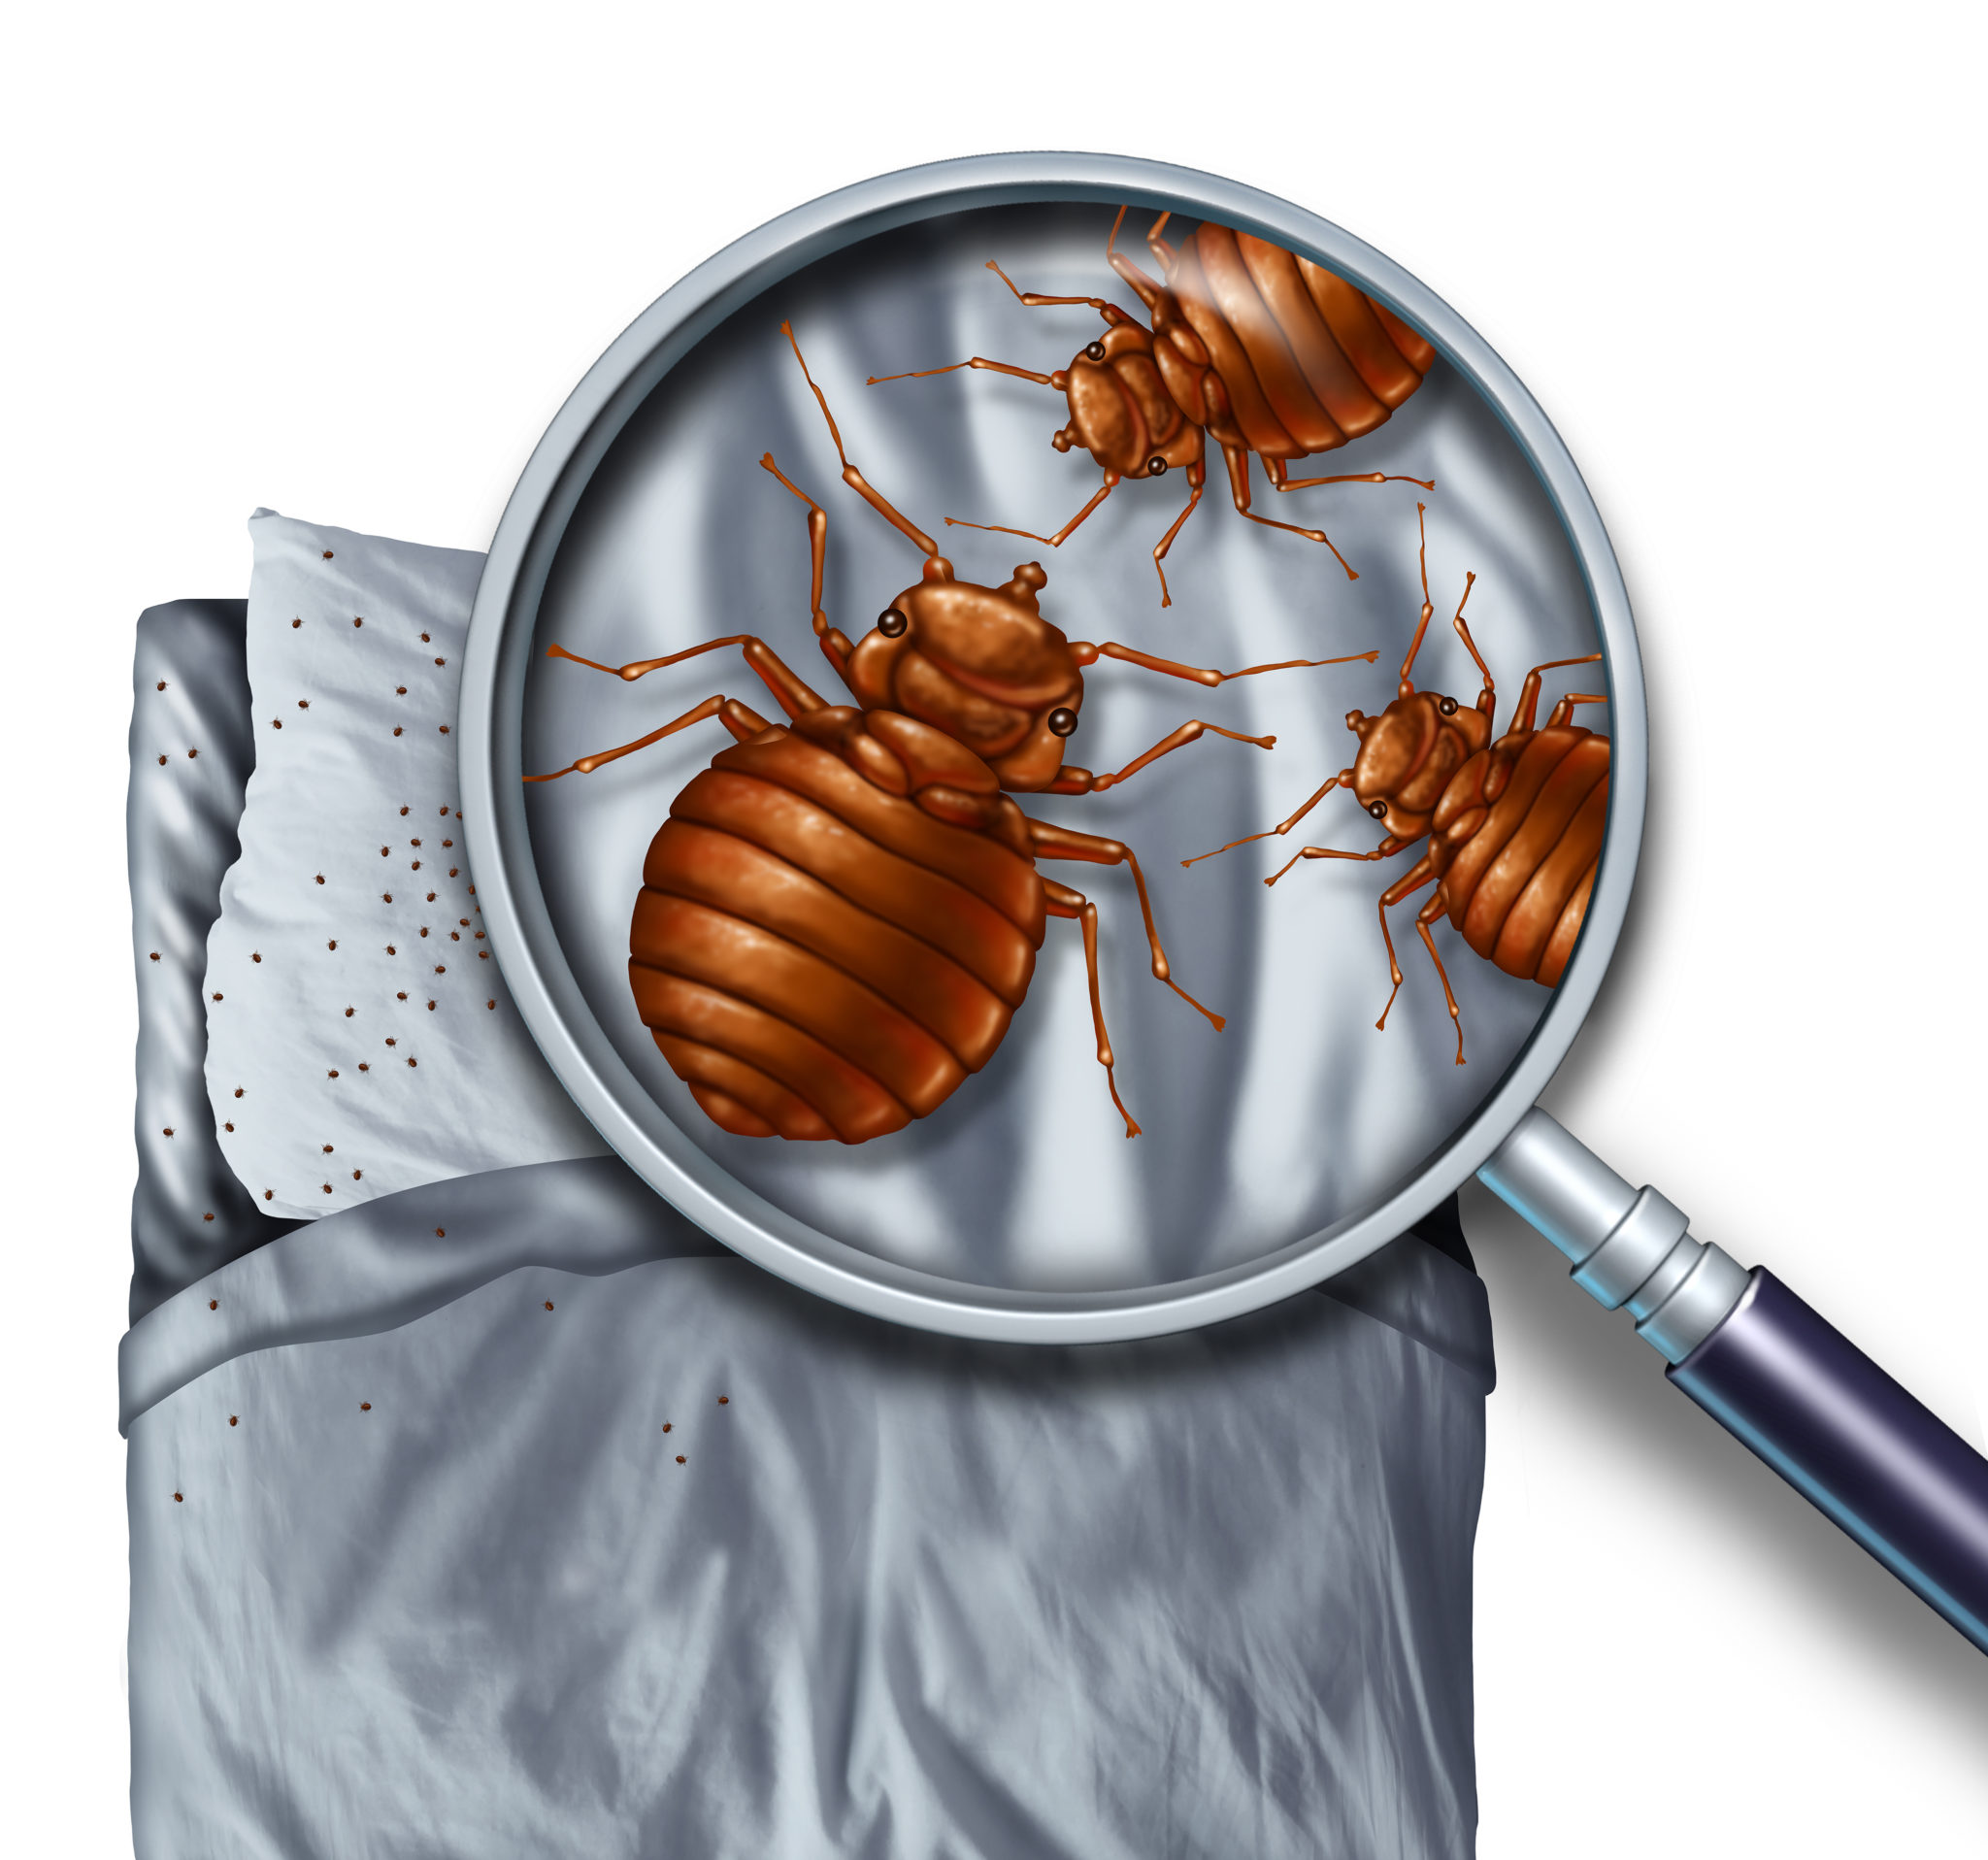 Illustration of bed bugs on a bed viewed through a magnifying glass